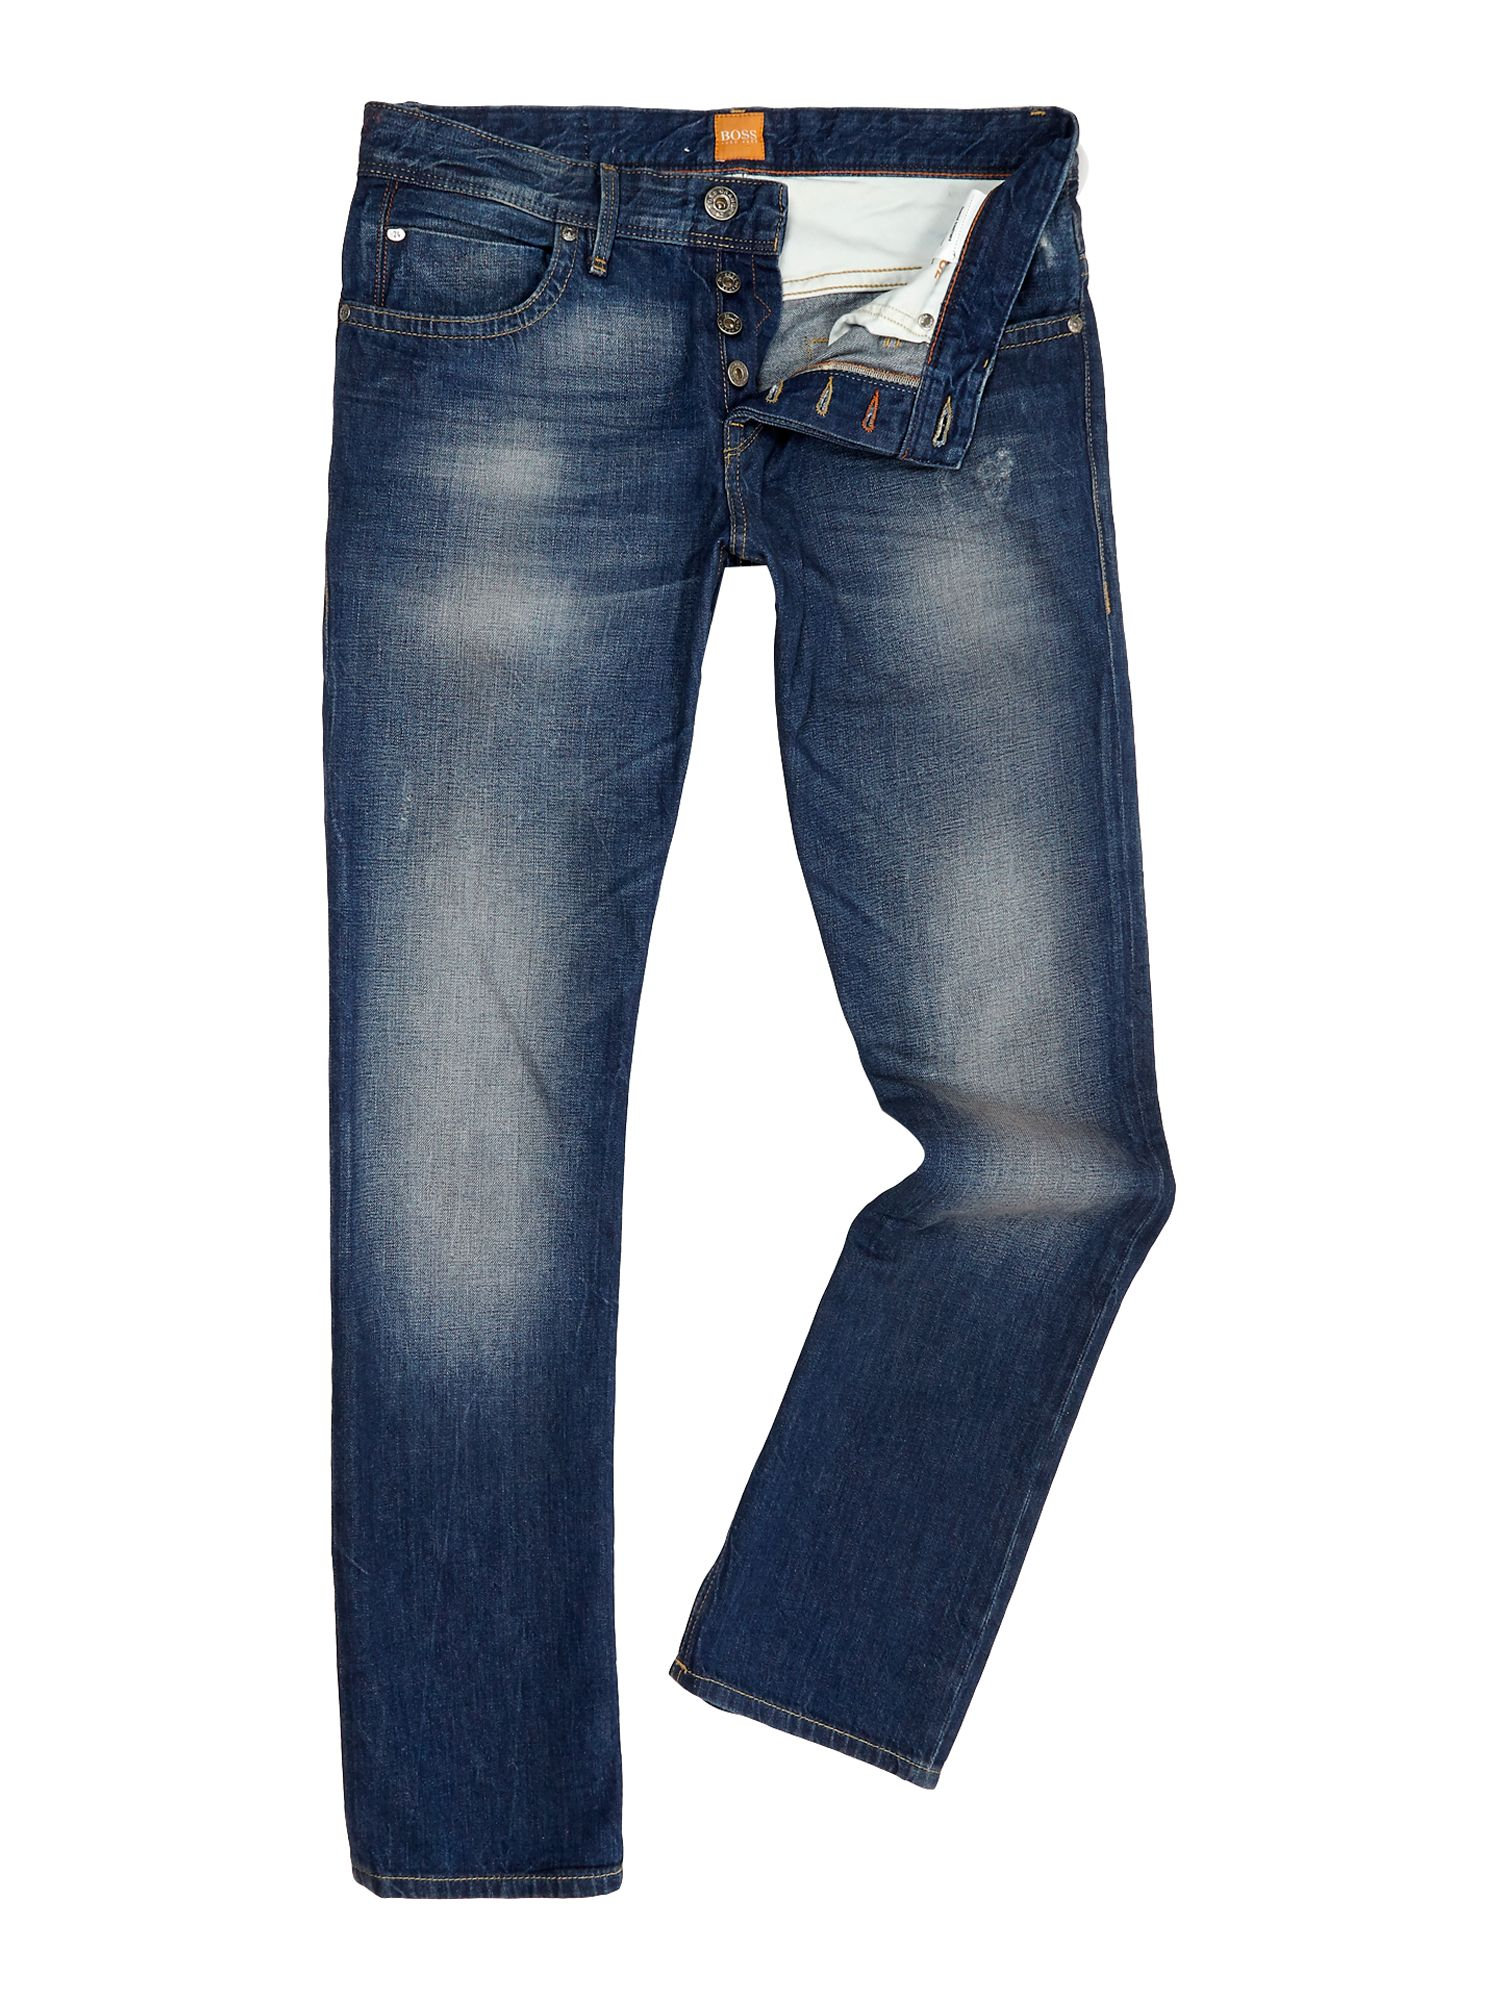 Orange 24 milano wash regular straight jean